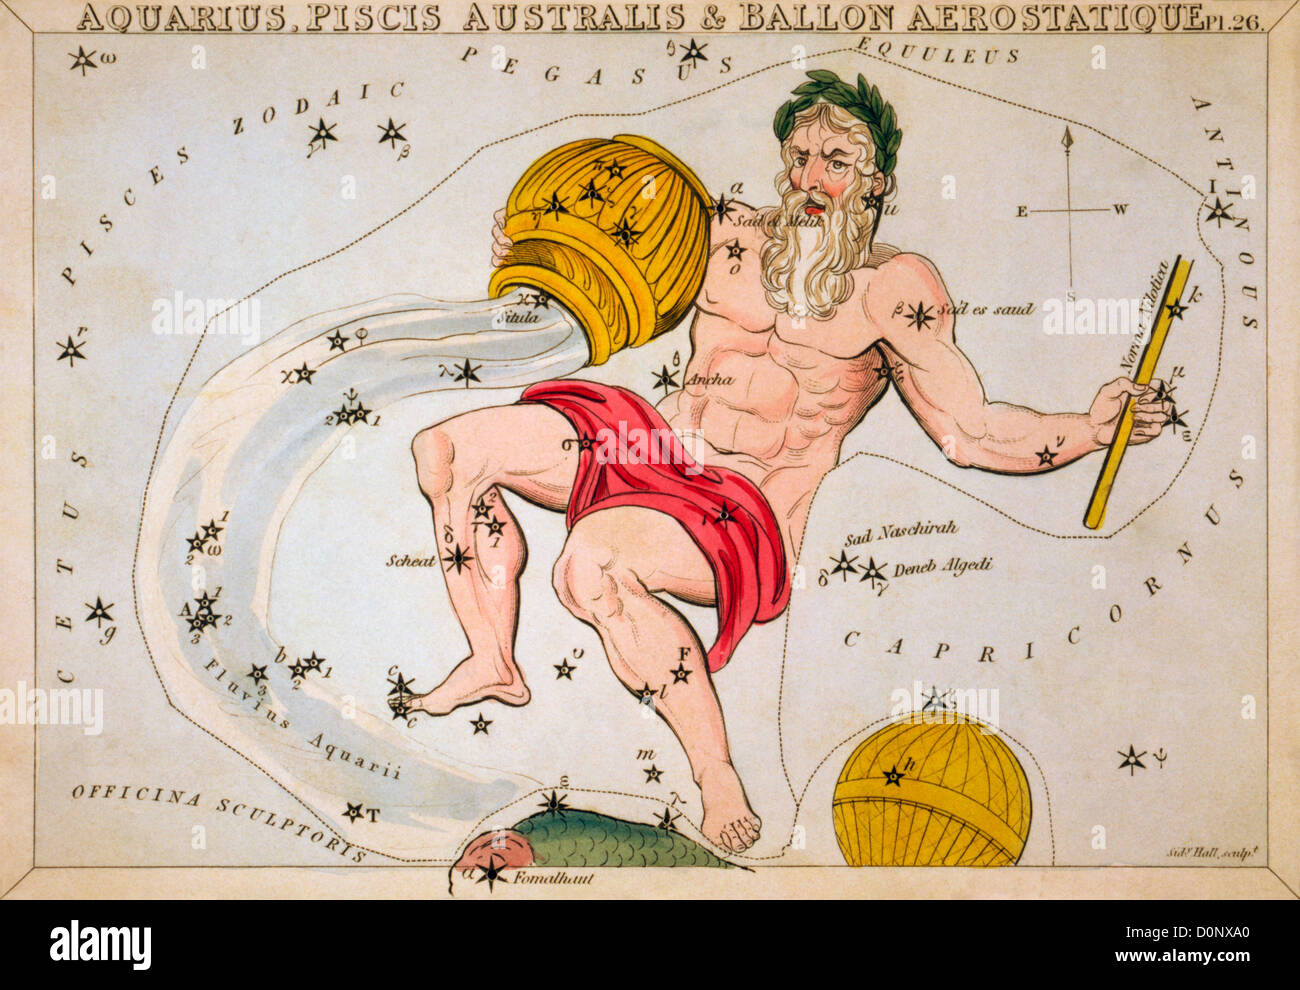 Constellation Card of Aquarius and Others - Stock Image